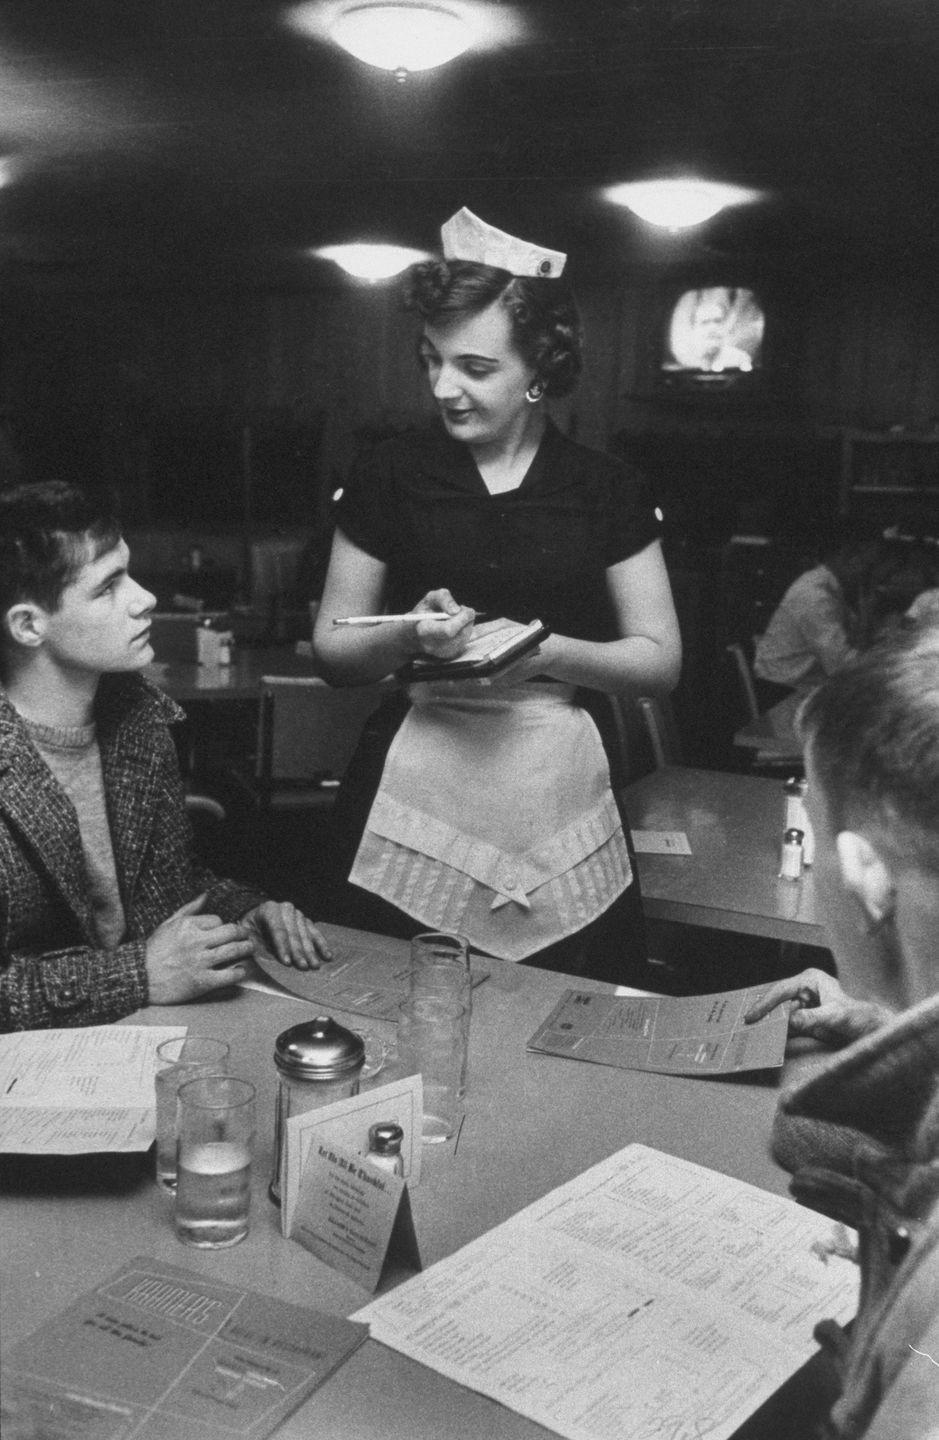 <p>In the '60s, Congress voted that the minimum wage could be lower for staffers at restaurants if a portion of their salary came from tips. At the time, minimum wage was $1.00, which is equivalent to $8.55 in 2019. </p>